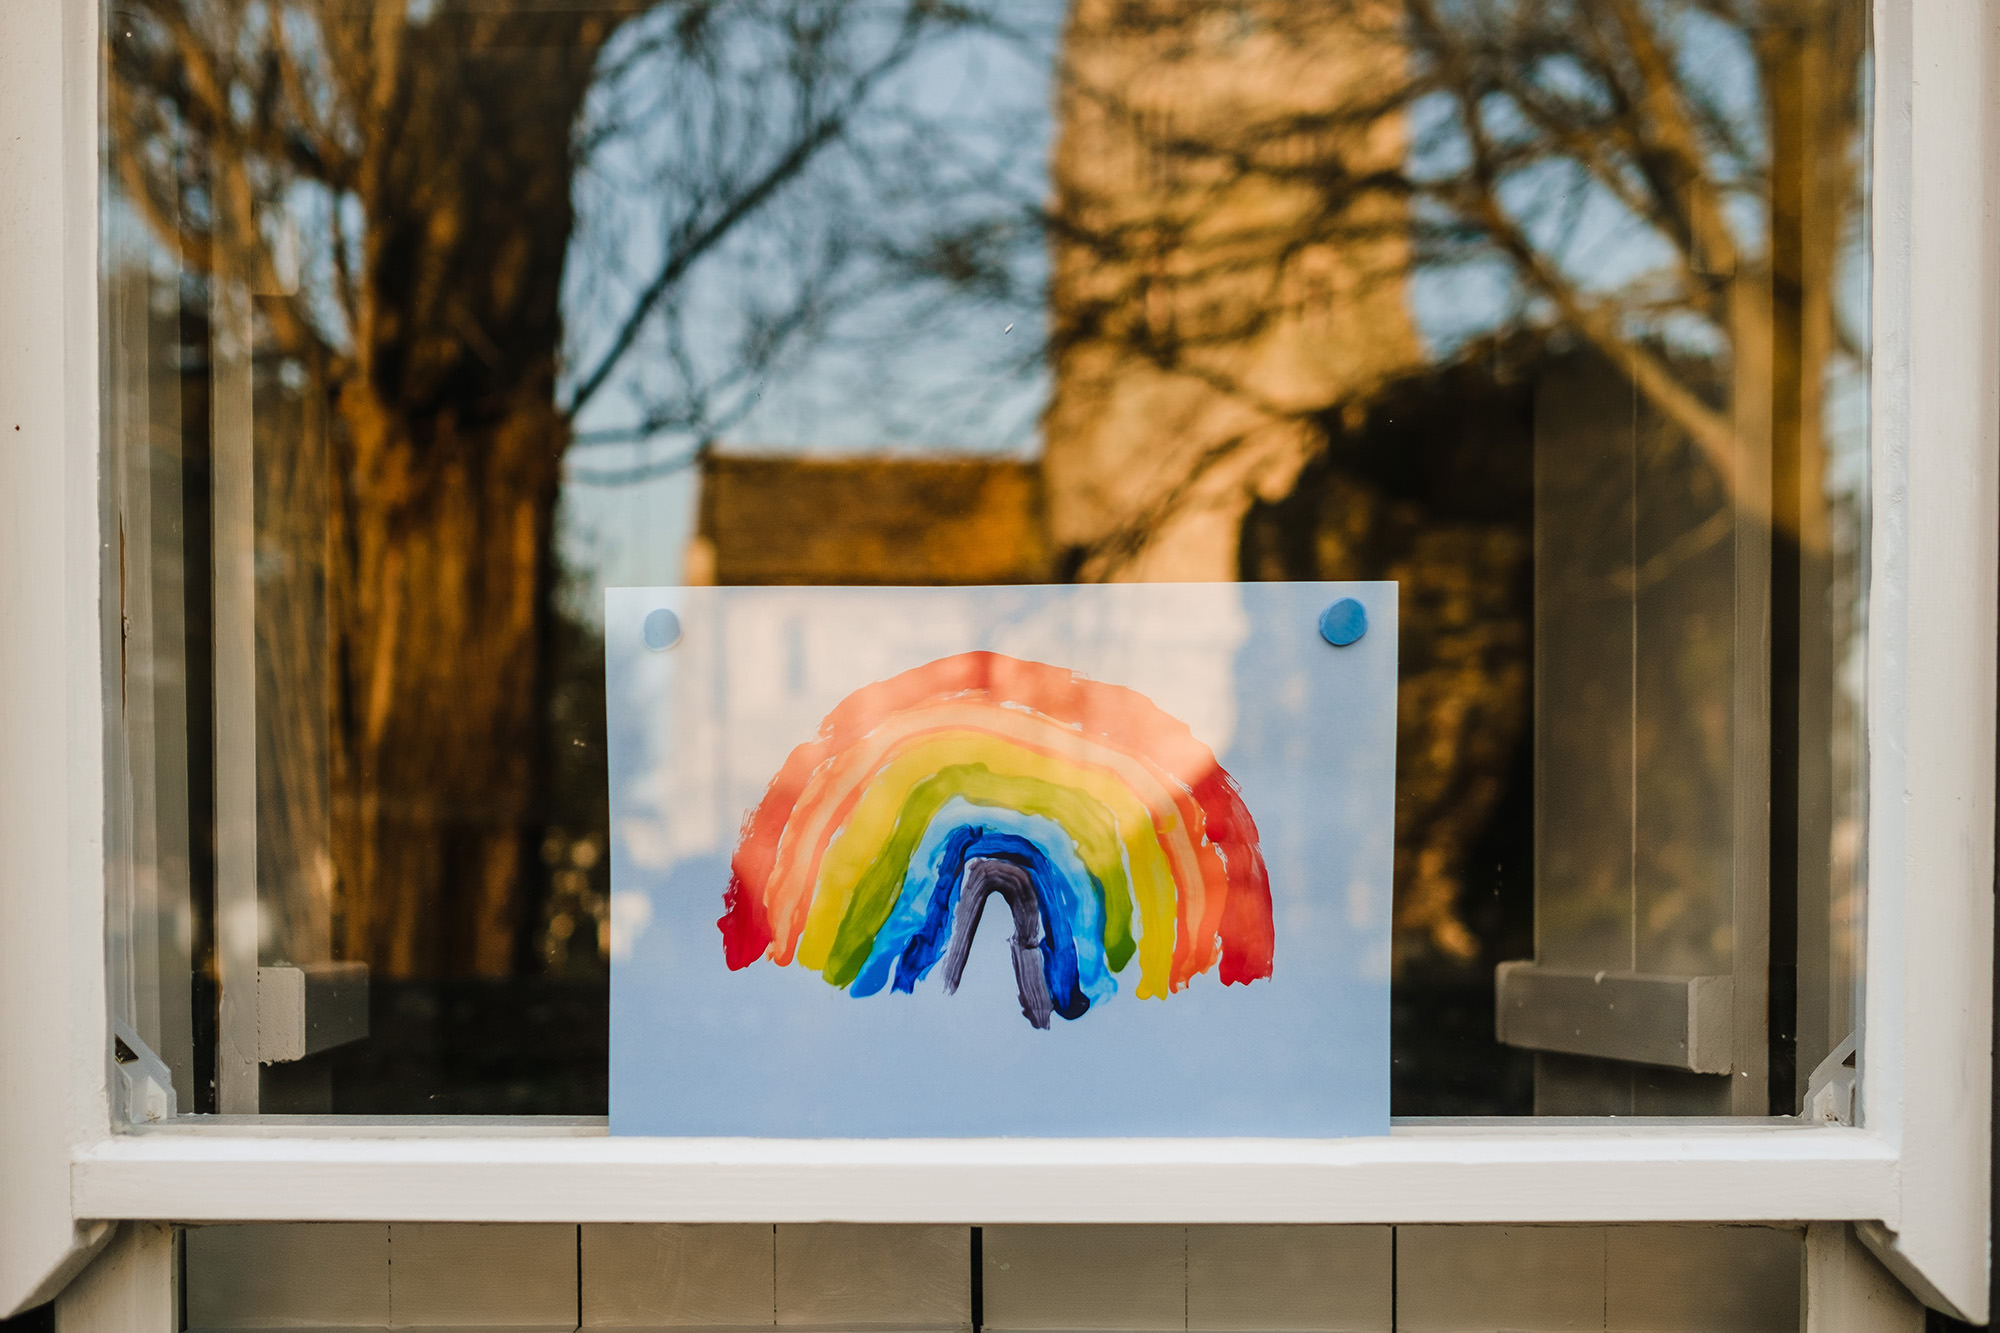 rainbow picture in window social distancing